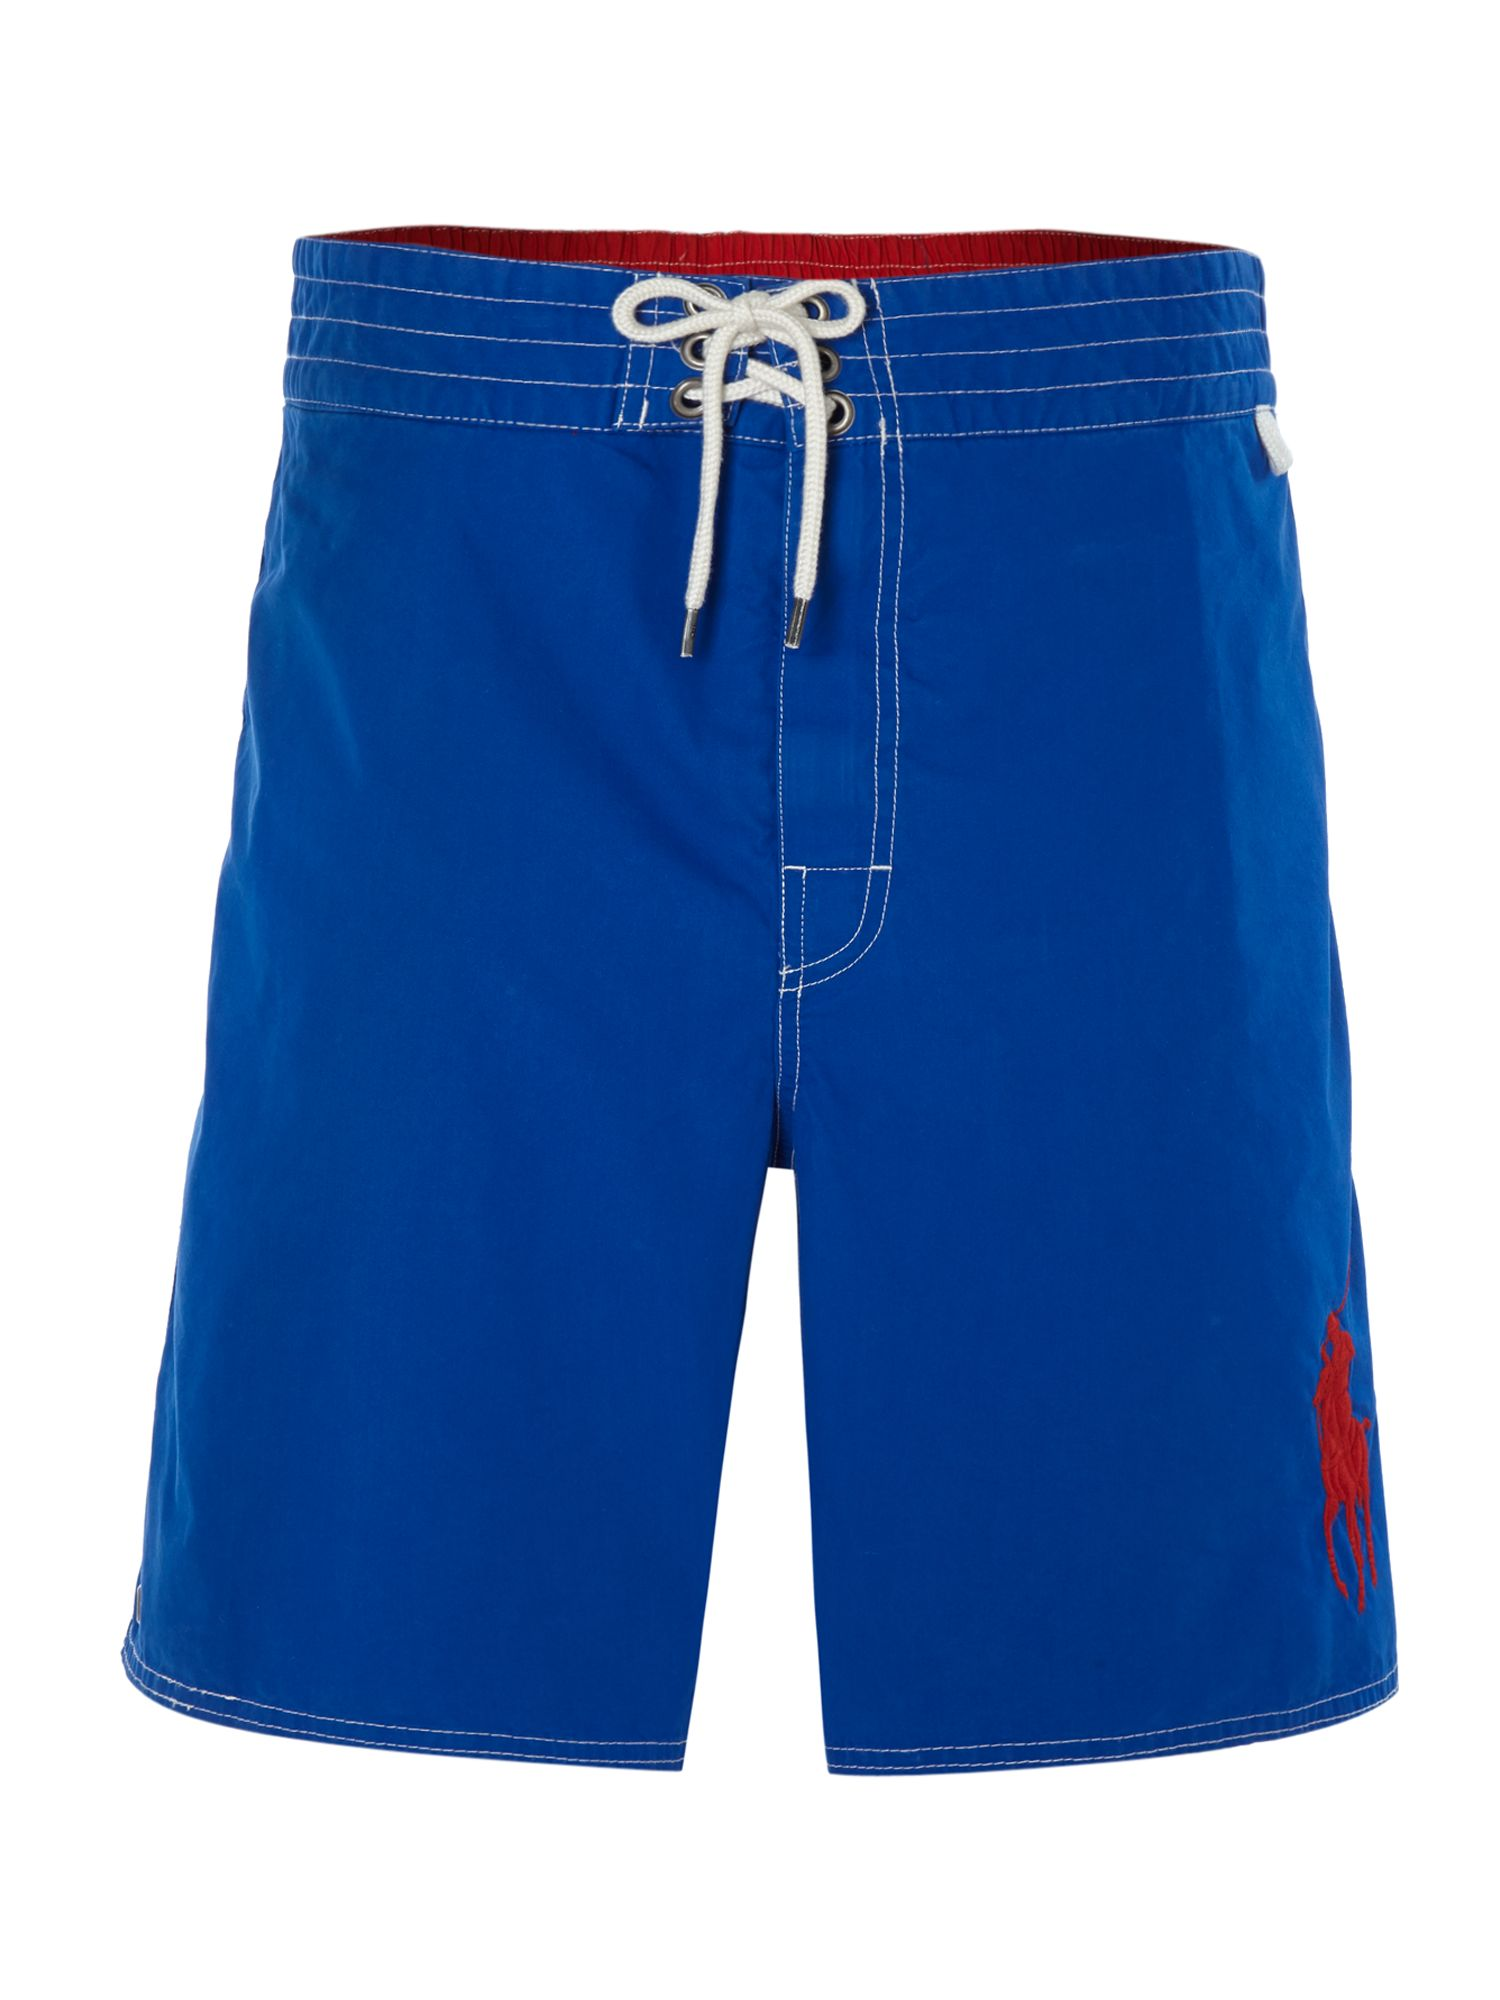 Sanibel polo pony swim trunk